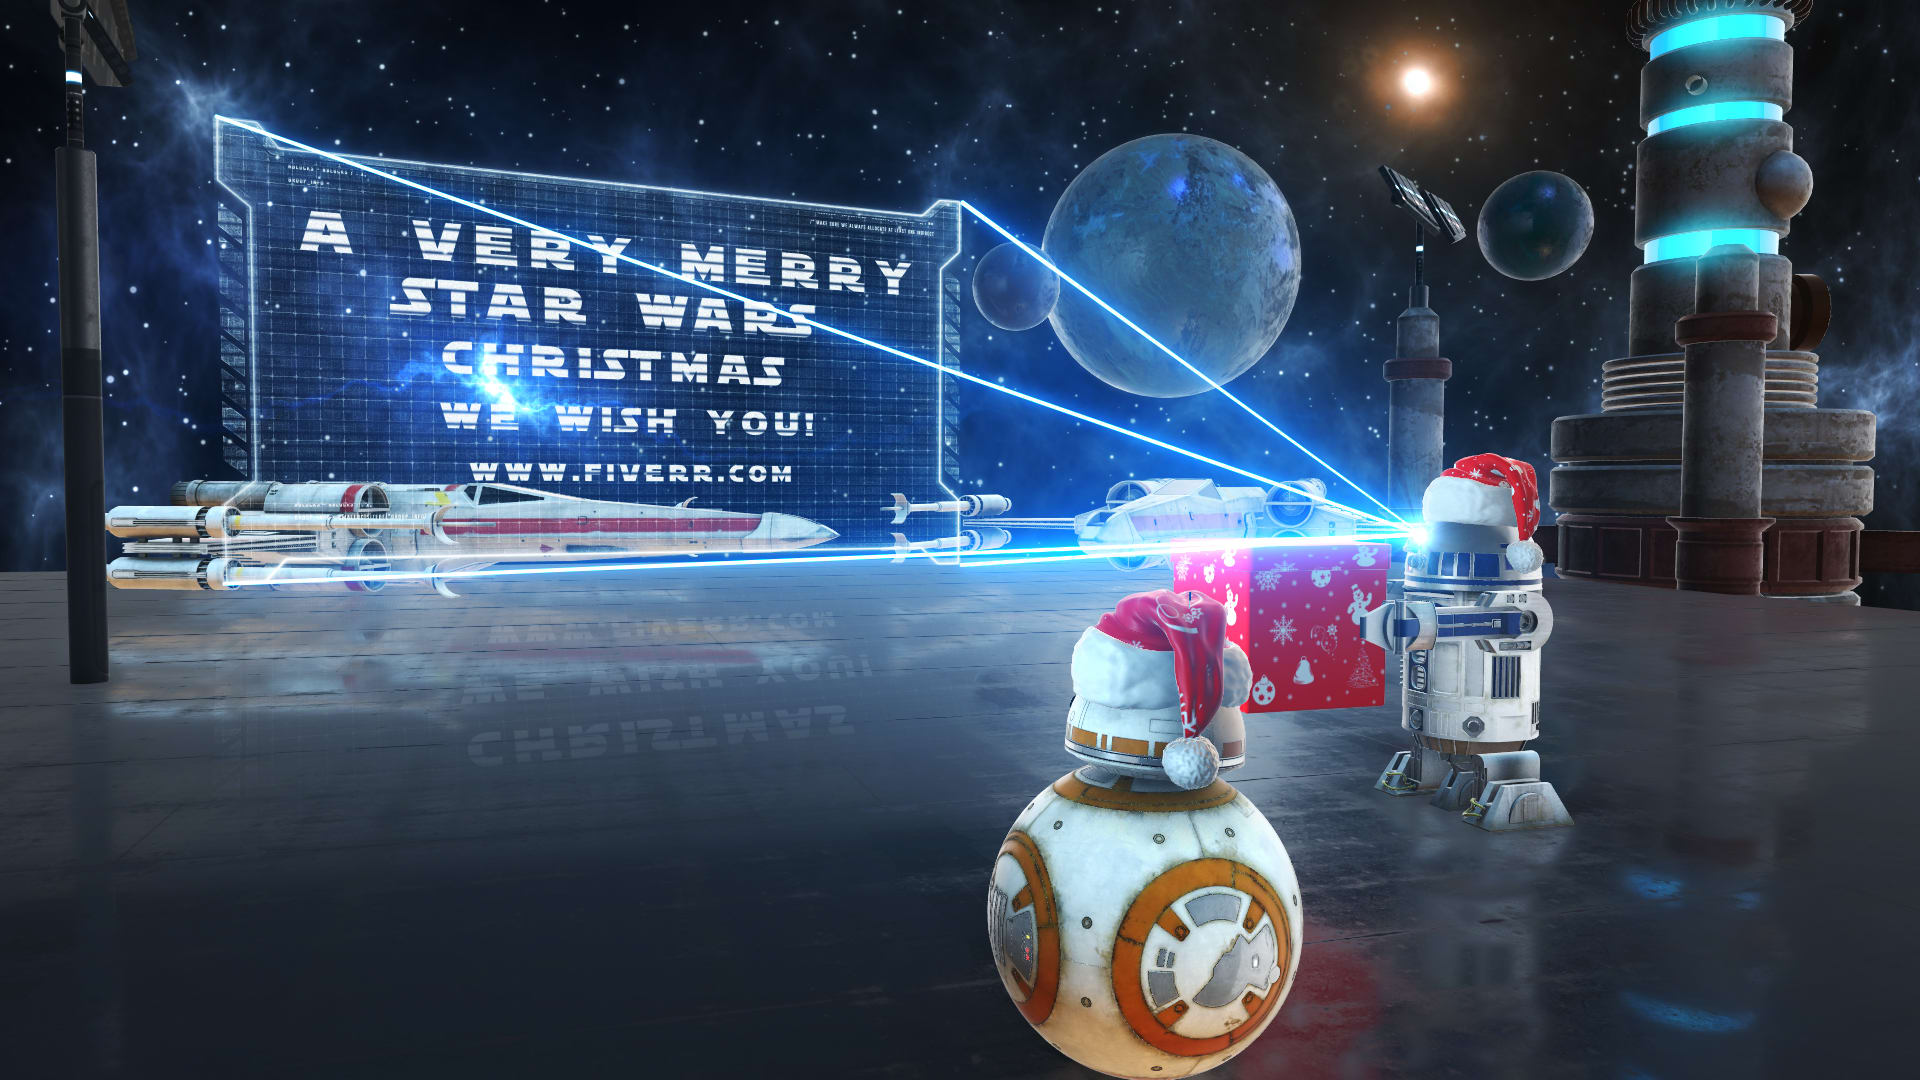 Create This Amazing Star Wars Christmas Video Greeting By Andre Jackson